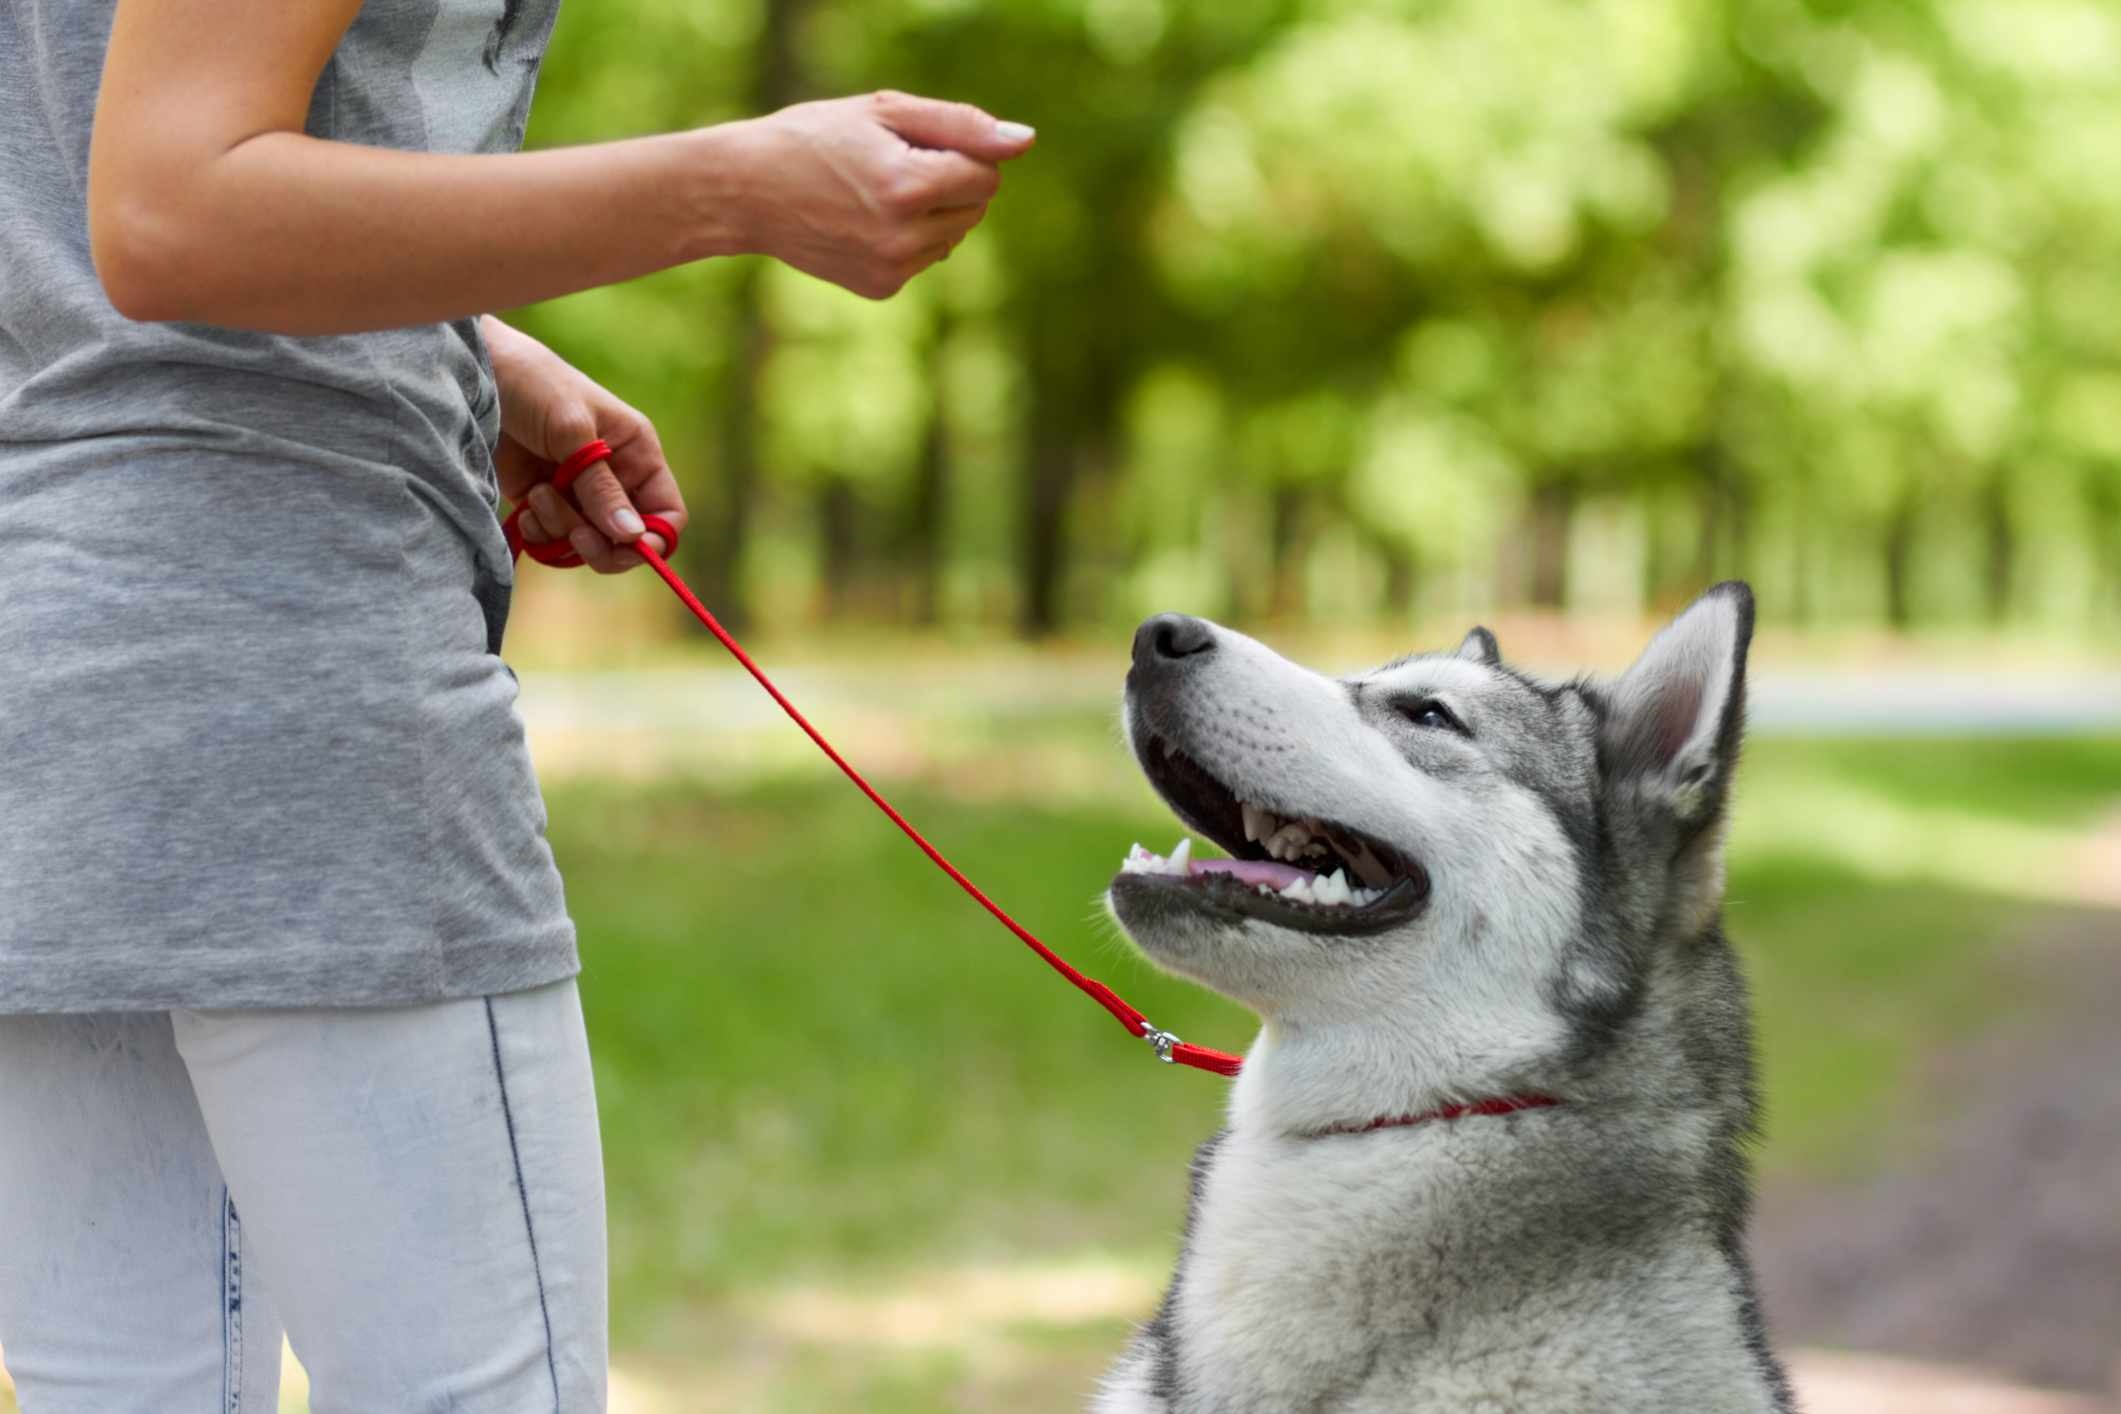 A Husky dog being trained by owner.